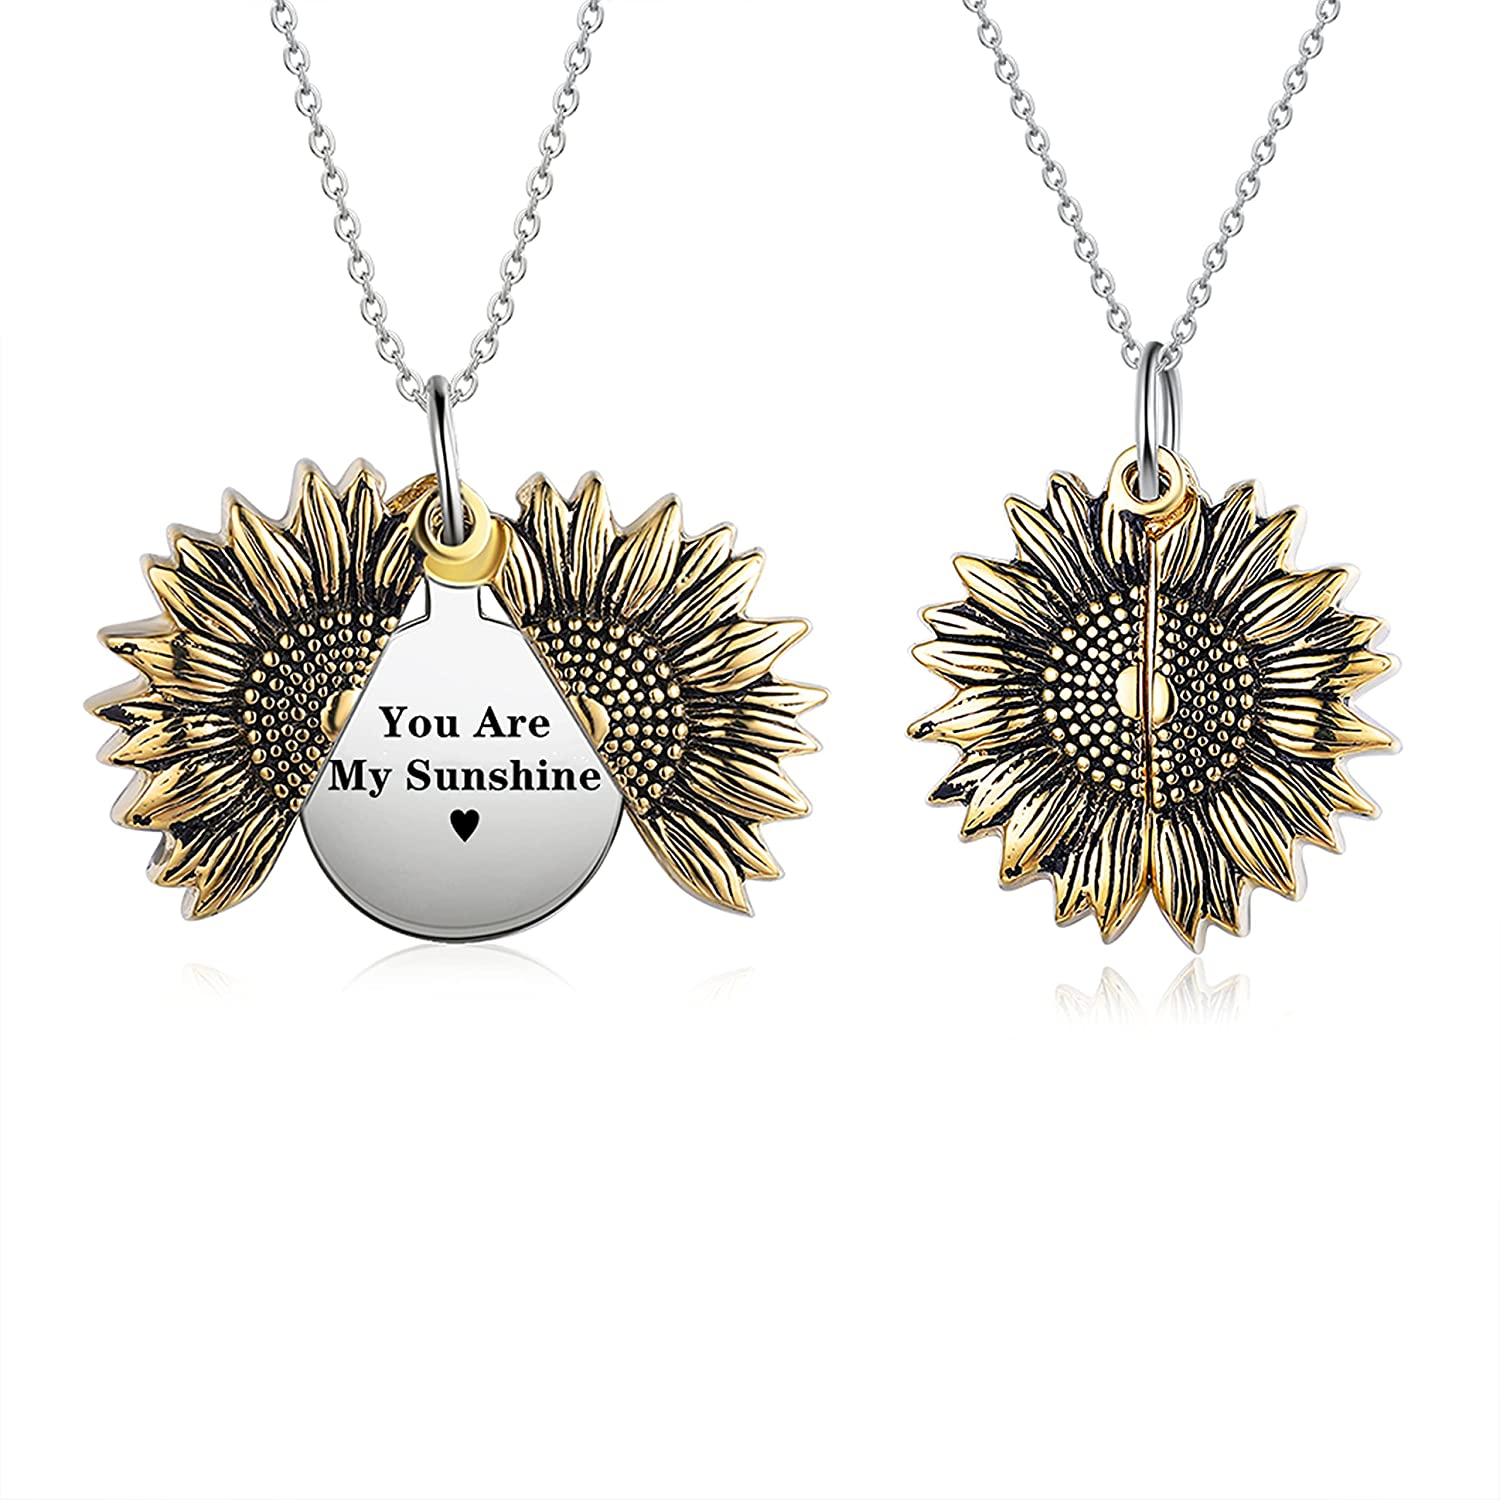 Personalized Sunflower Necklace for Women Girls Custom You are My Sunshine Necklace Sunflower Locket Jewelry Pendant with Name Personalized Necklace